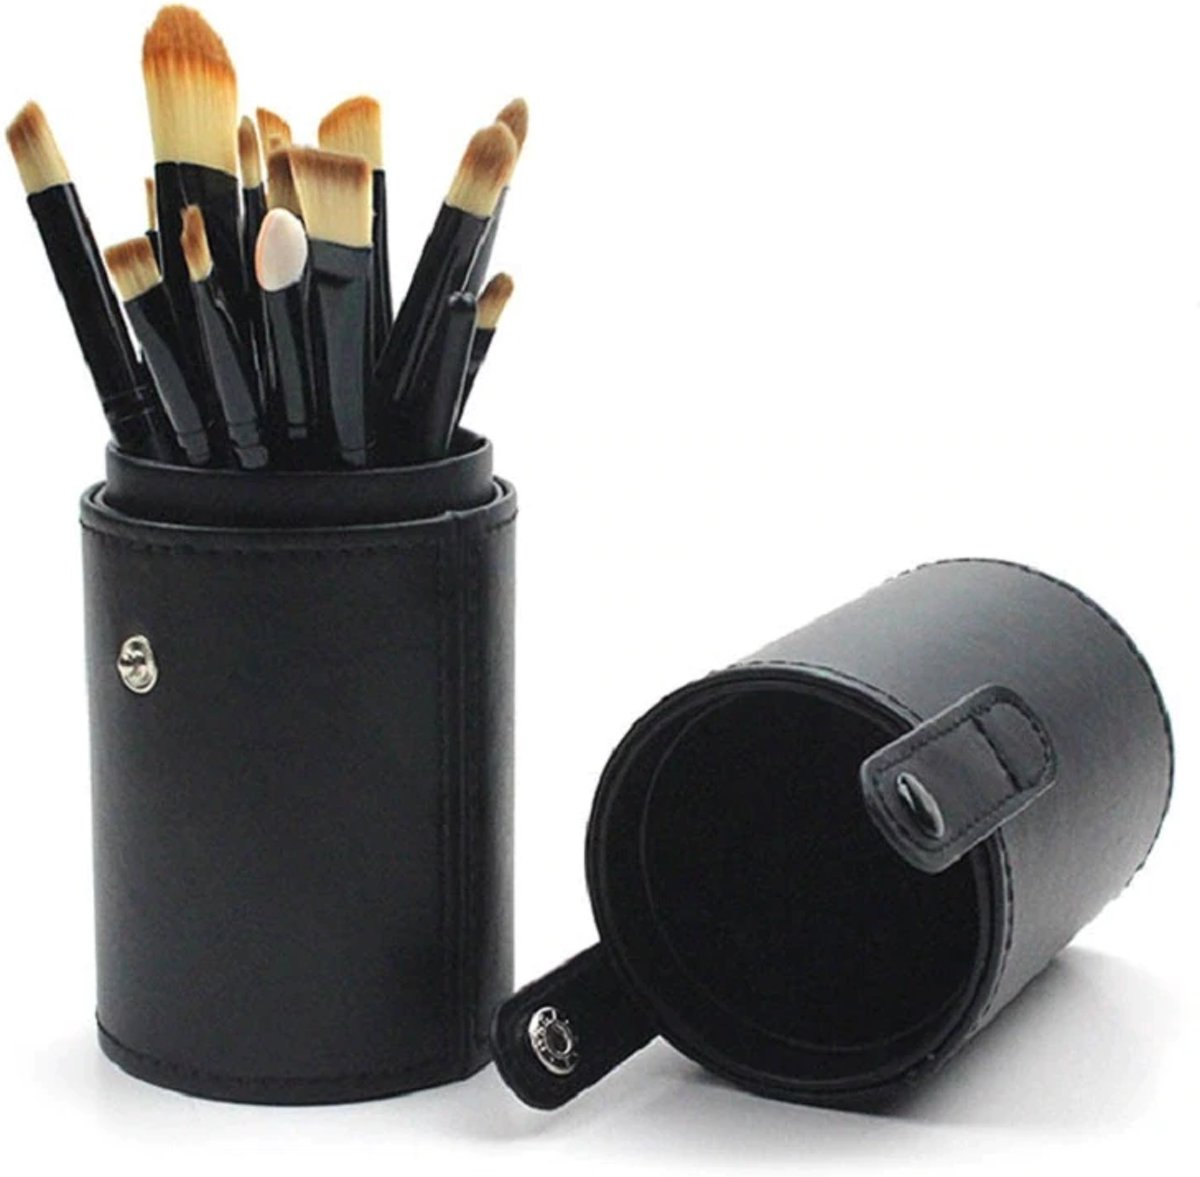 15-delige Make-up Kwasten Set in Houder-Zwart- Make-up Organizer- Moederdag cadeau- Bellasupplies